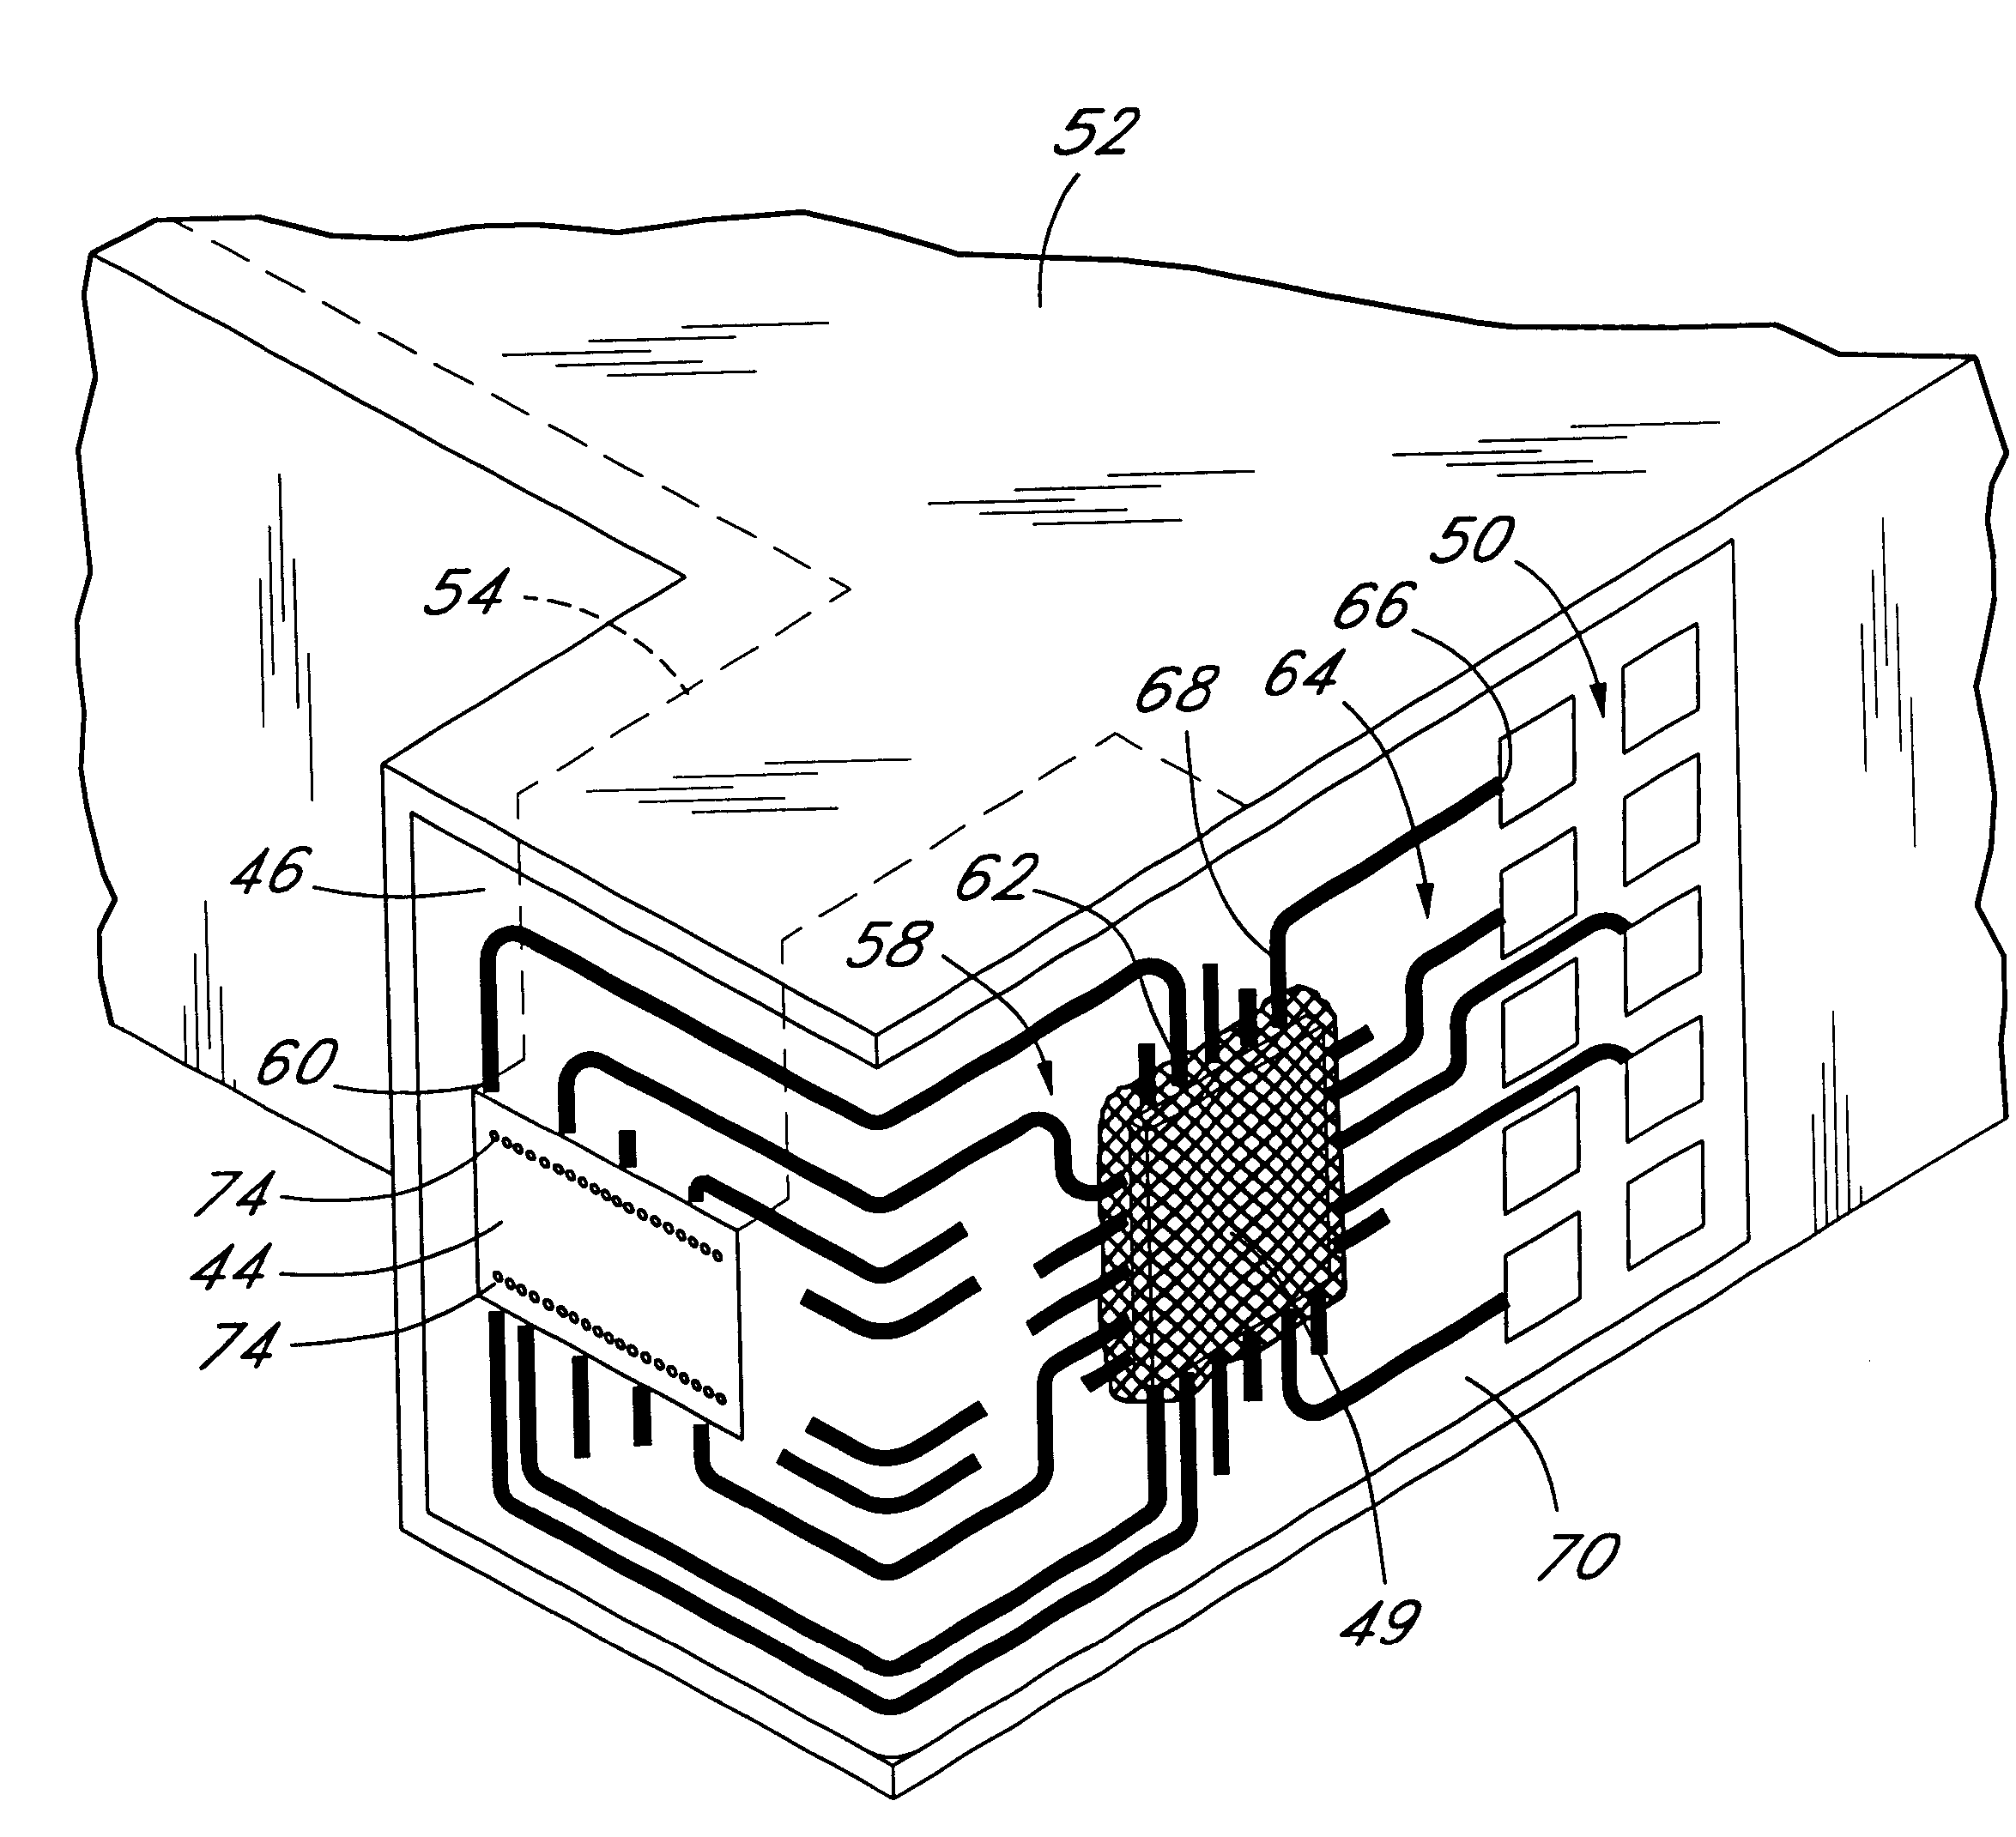 Patent Us6290321 - Printer Ink Cartridge